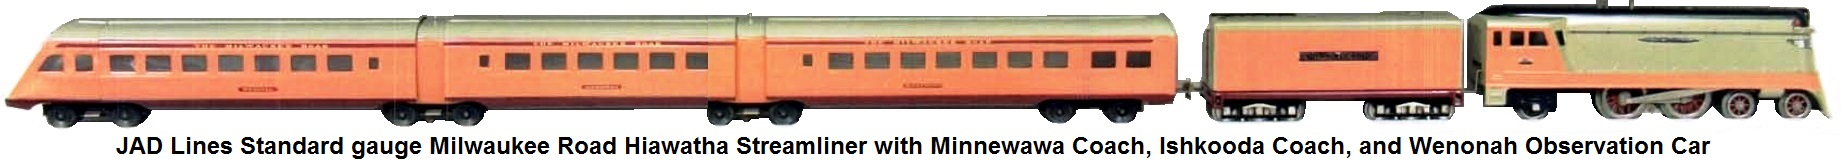 JAD Lines Standard gauge Milwaukee Road Hiawatha Streamliner with 3-car articulated passenger set featuring the Minnewawa coach, Ishkooda coach, and Wenonah observation